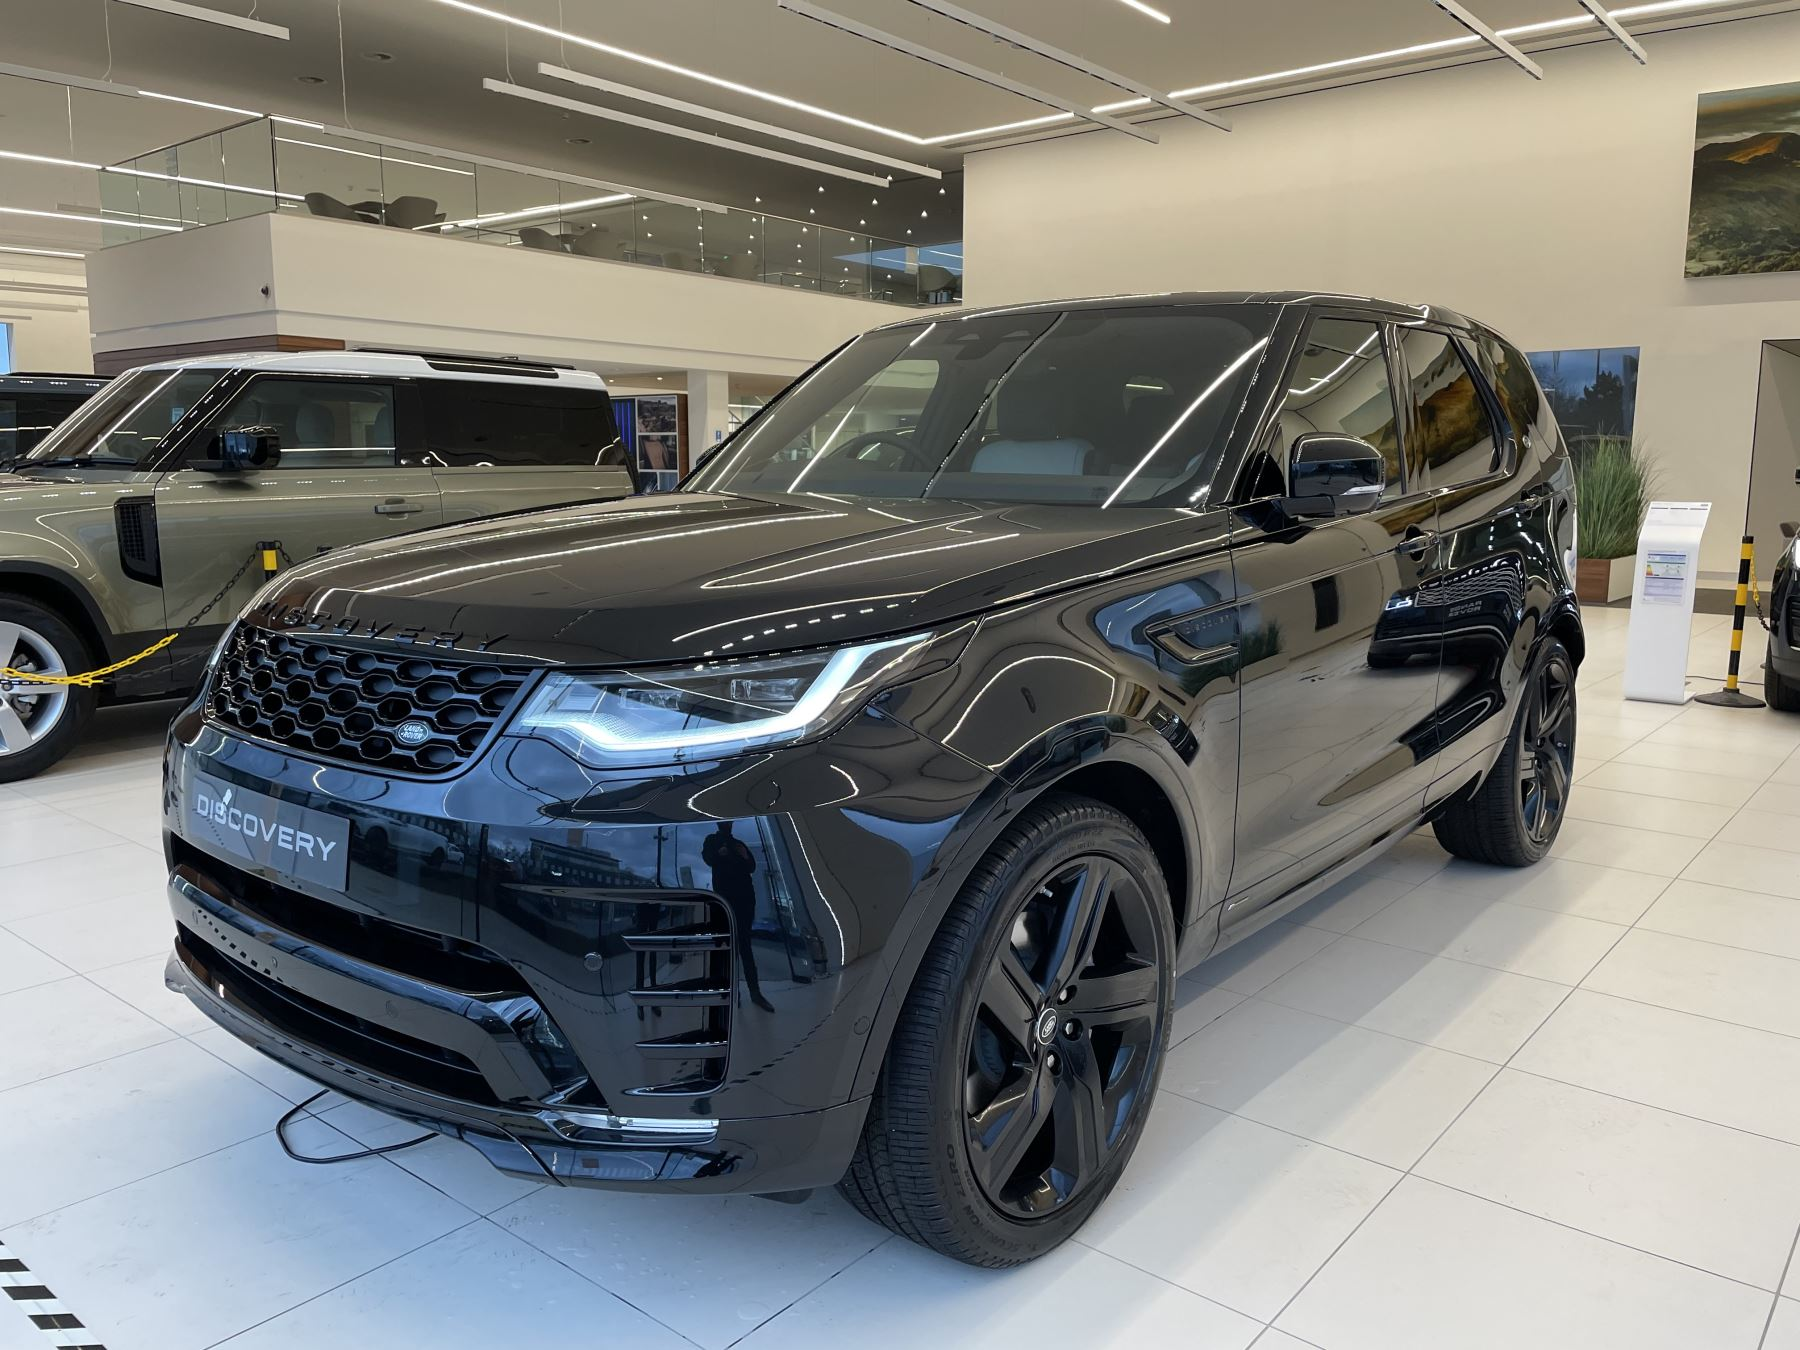 Land Rover Discovery 3.0 D300 R-Dynamic SE image 1